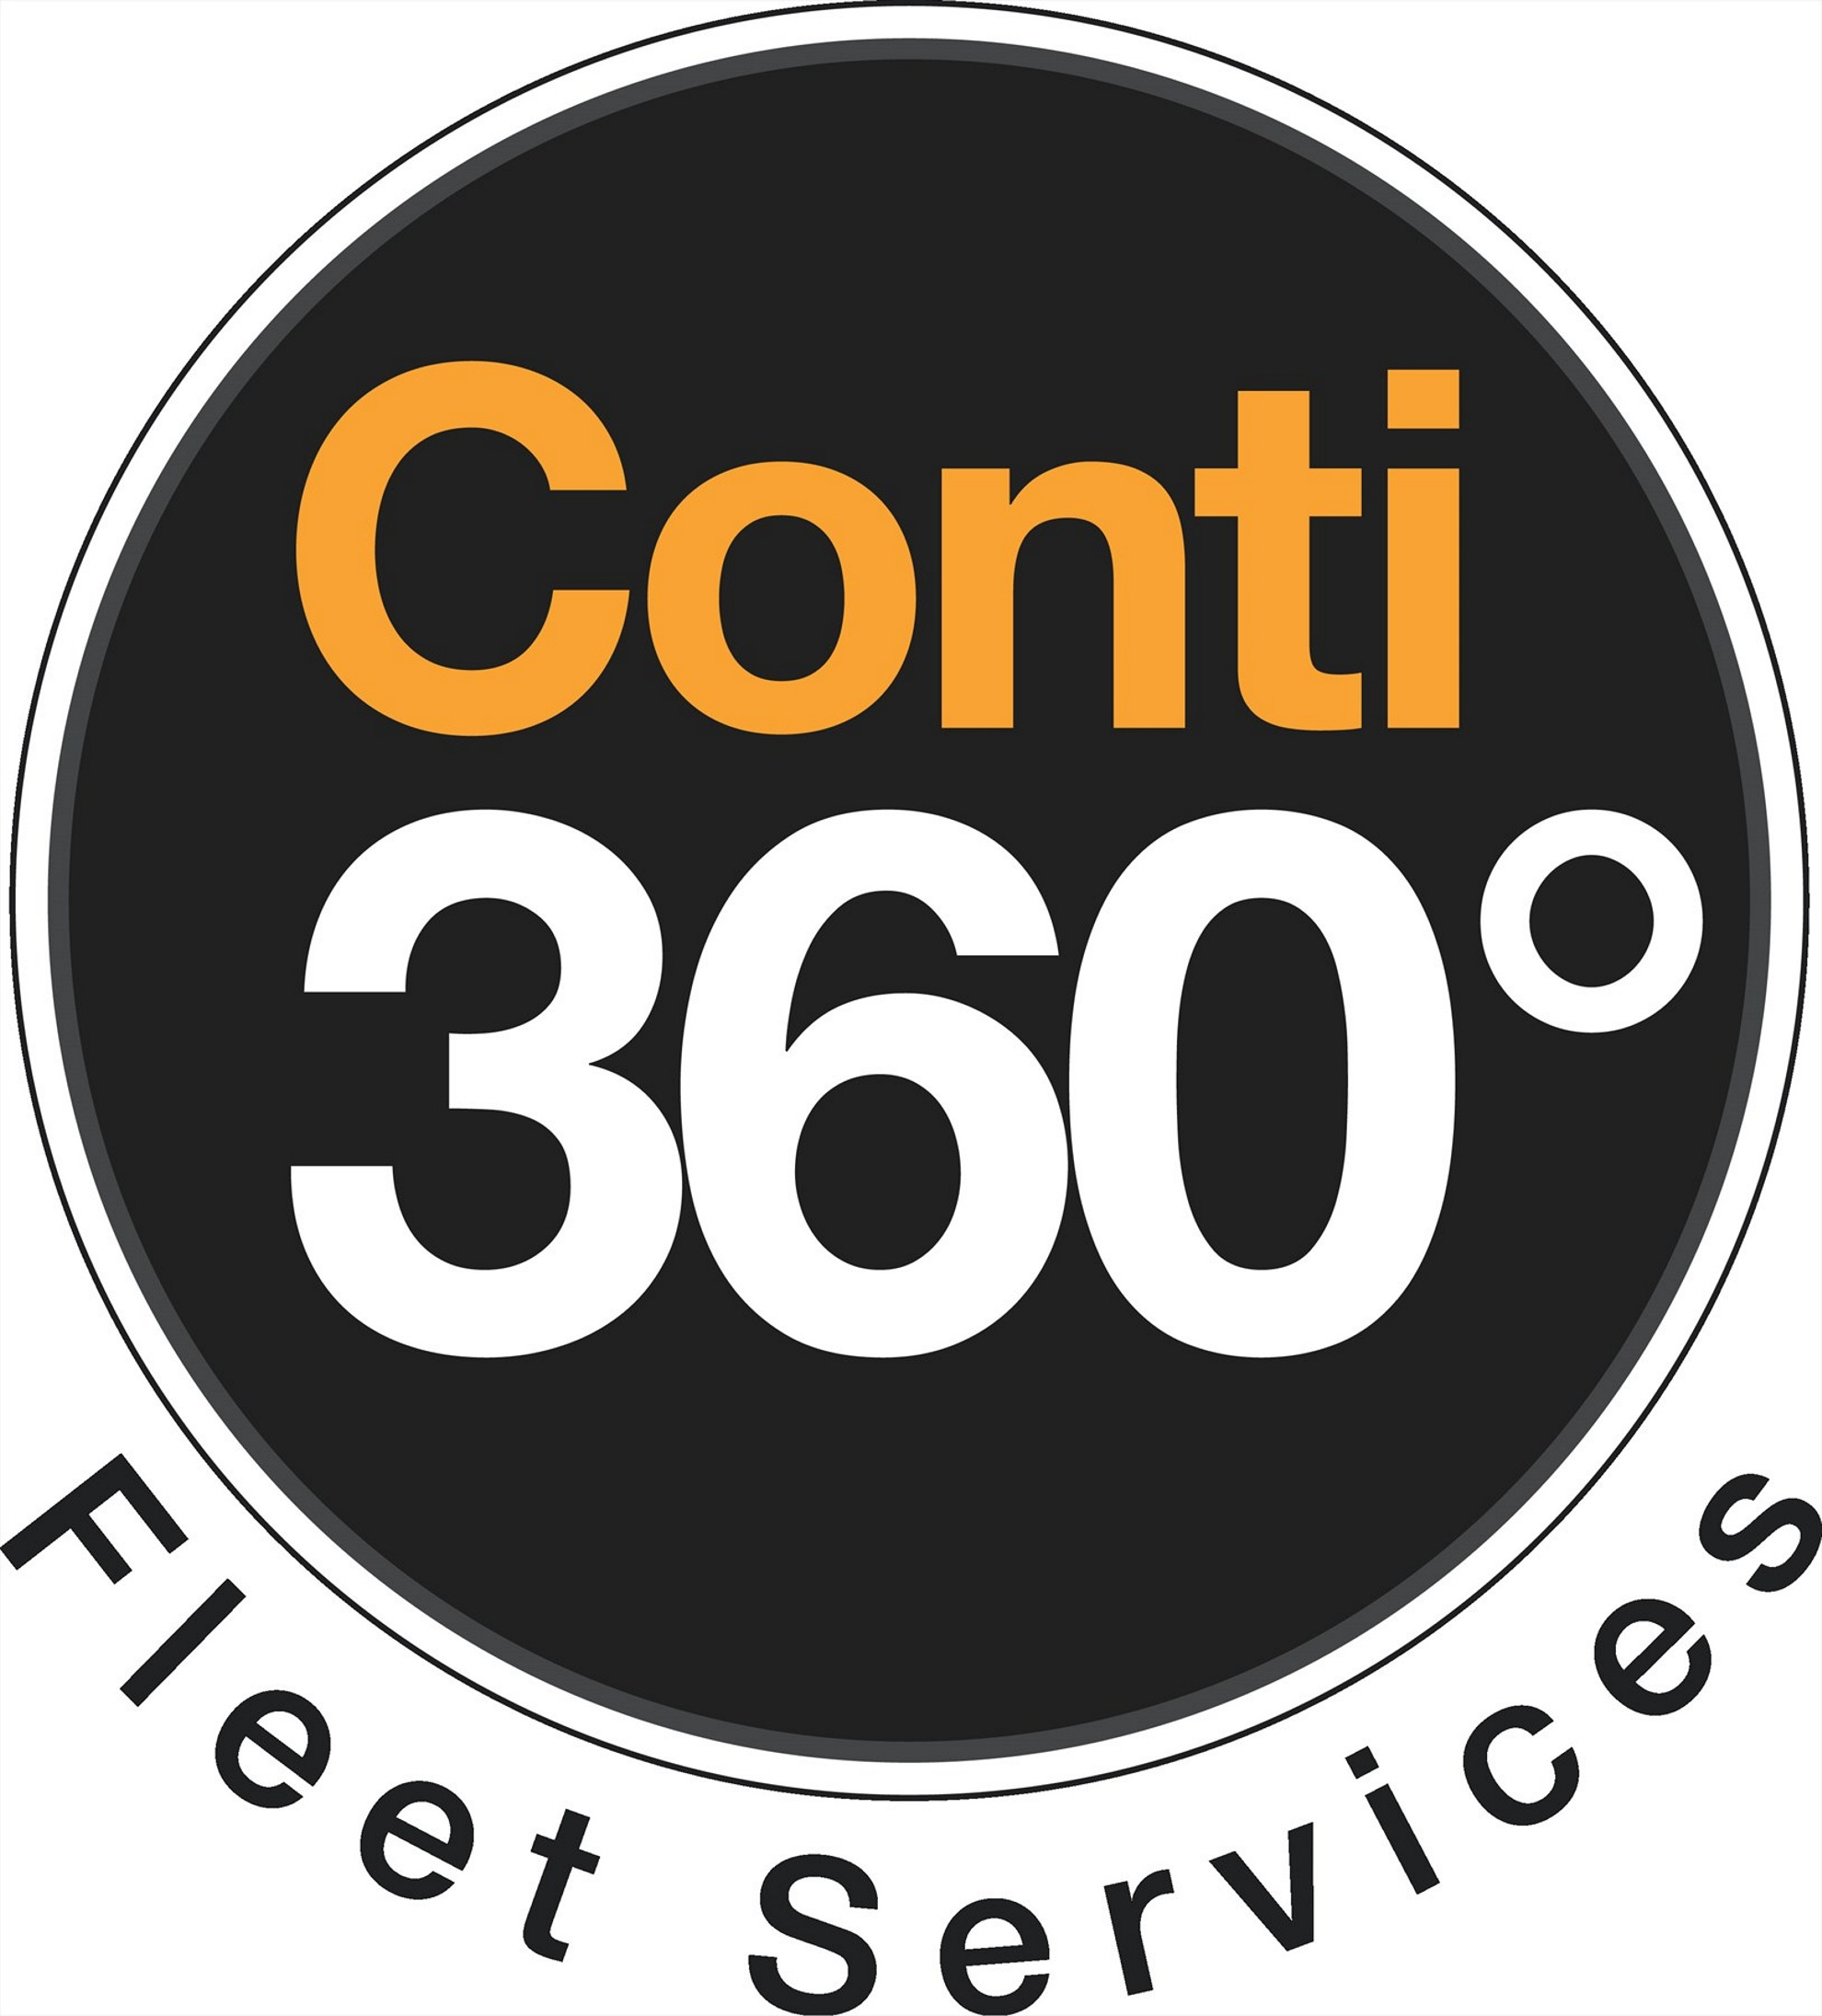 Continental 360 176 Fleet Services Now Available In South Africa